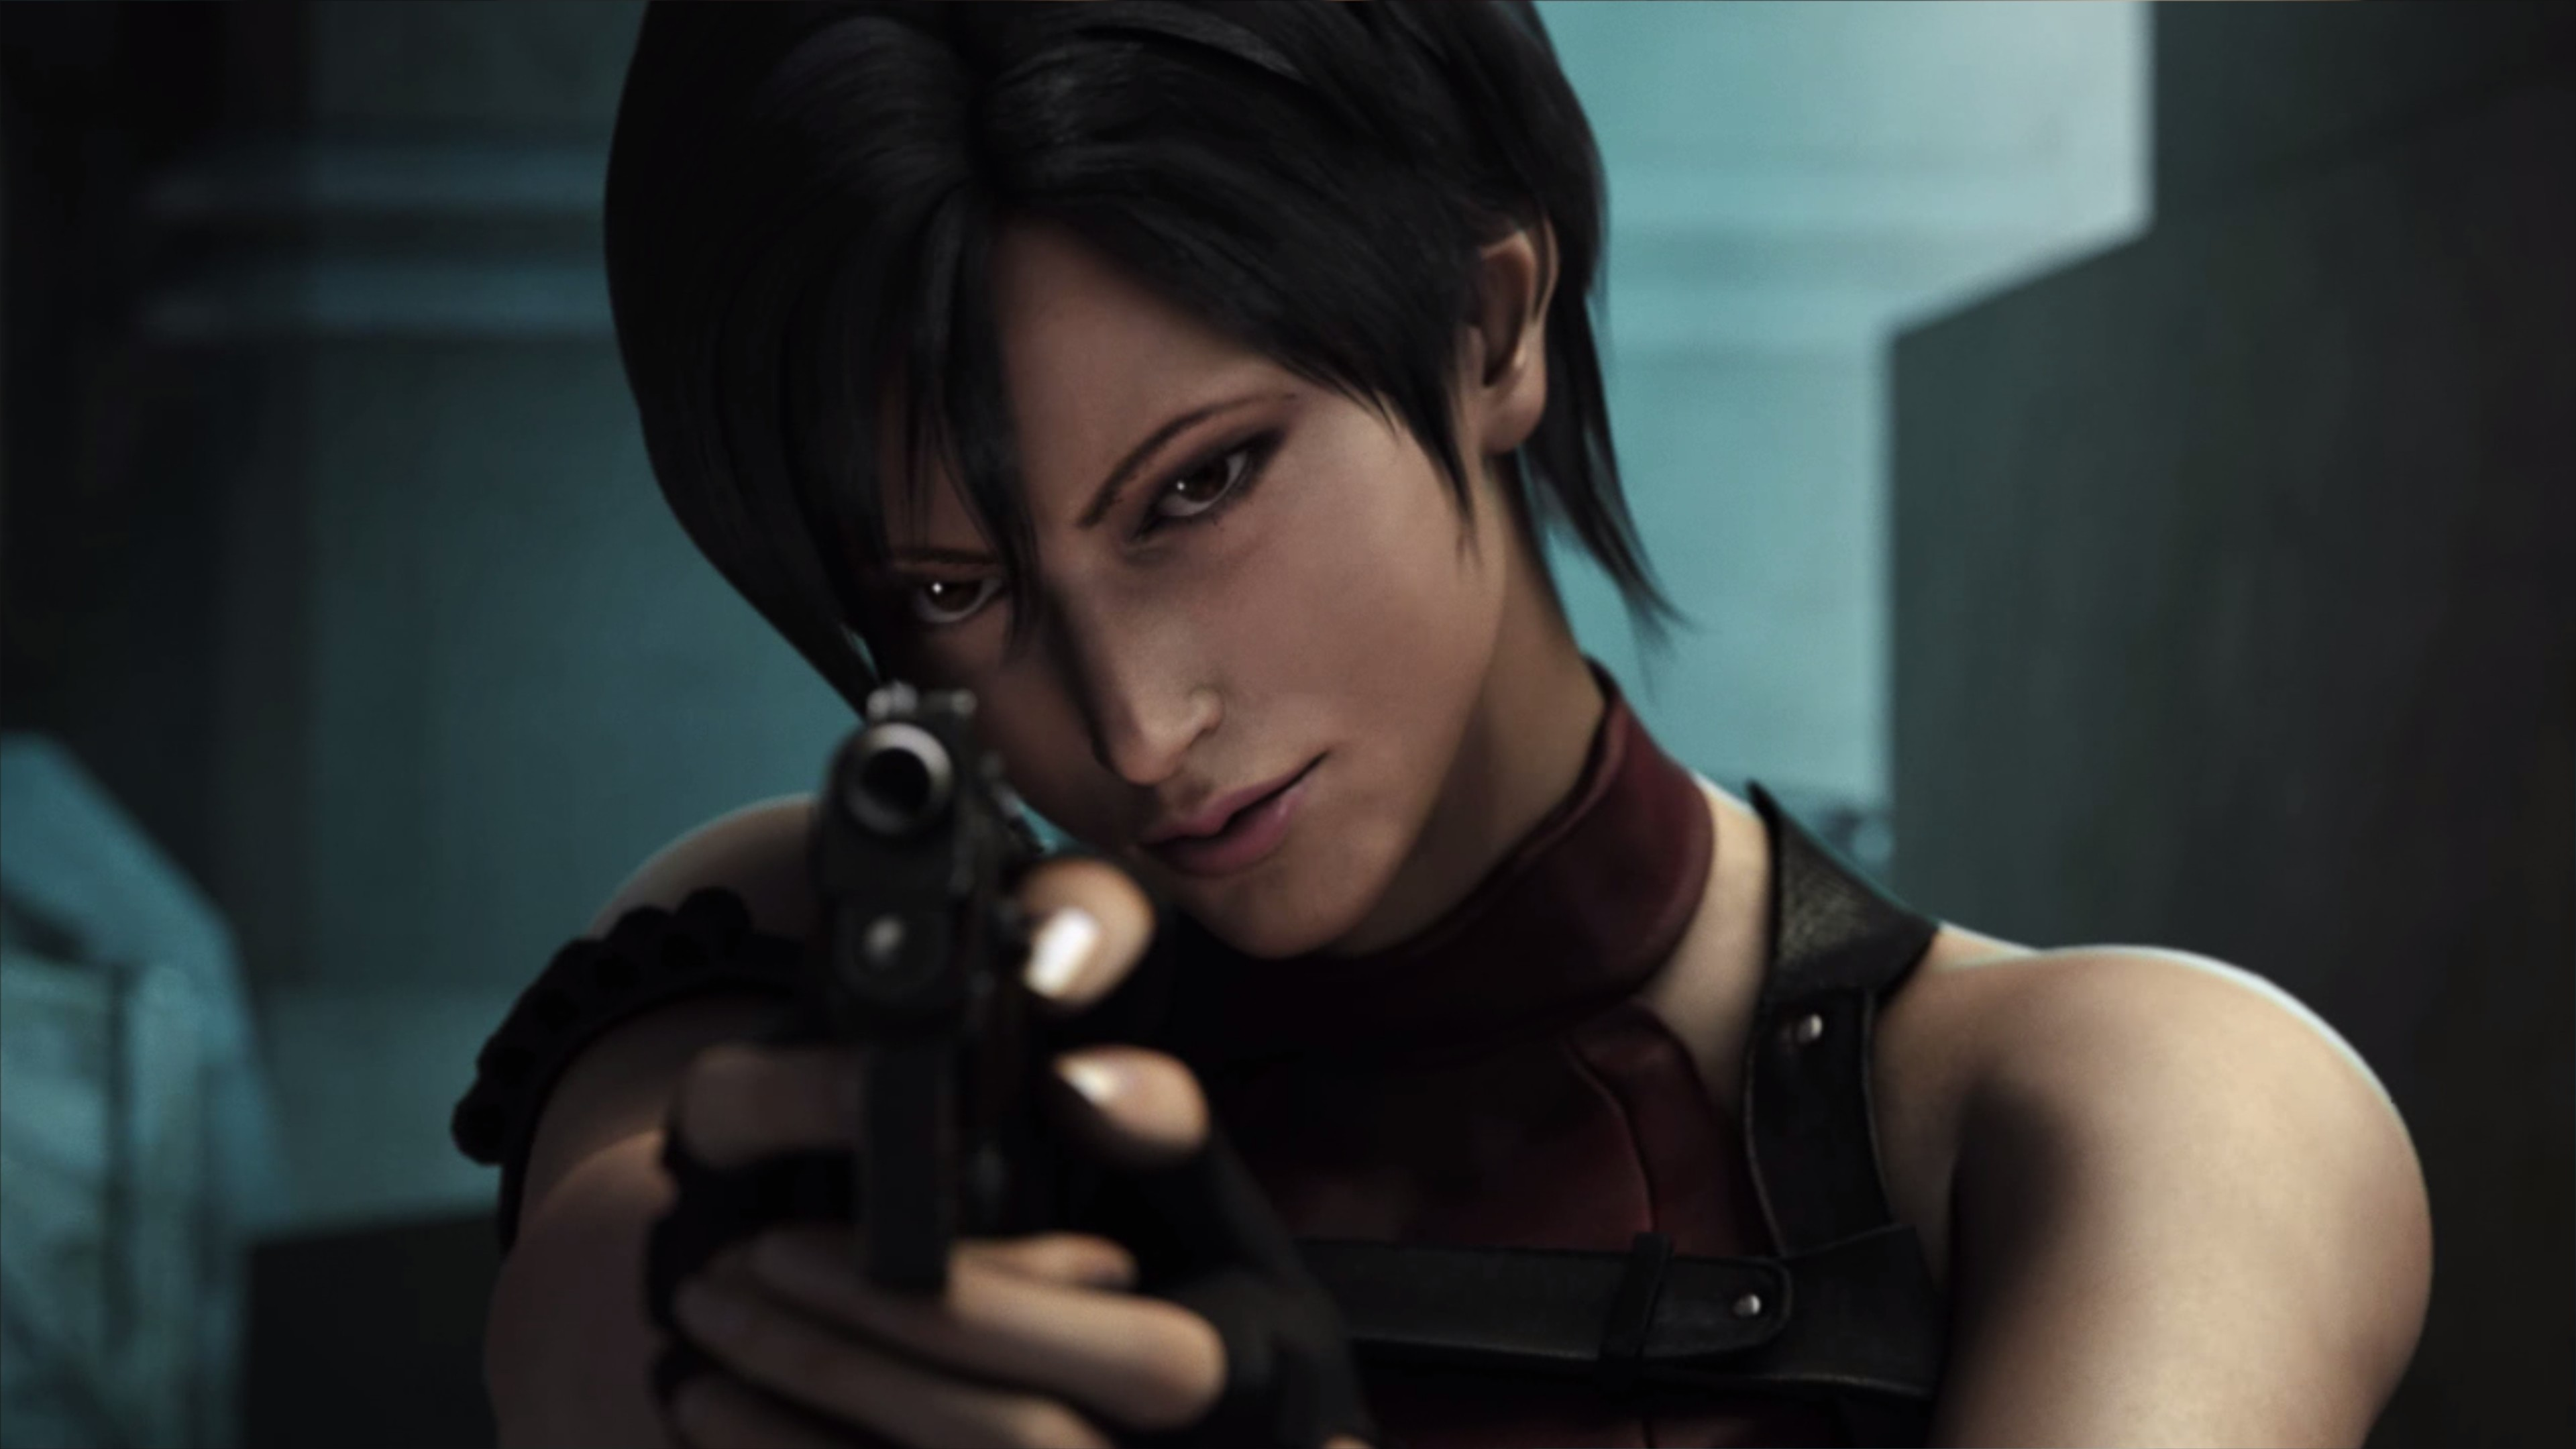 3840x2160 Resident Evil Operation Raccoon City Resident Evil Ada Wong Wallpaper